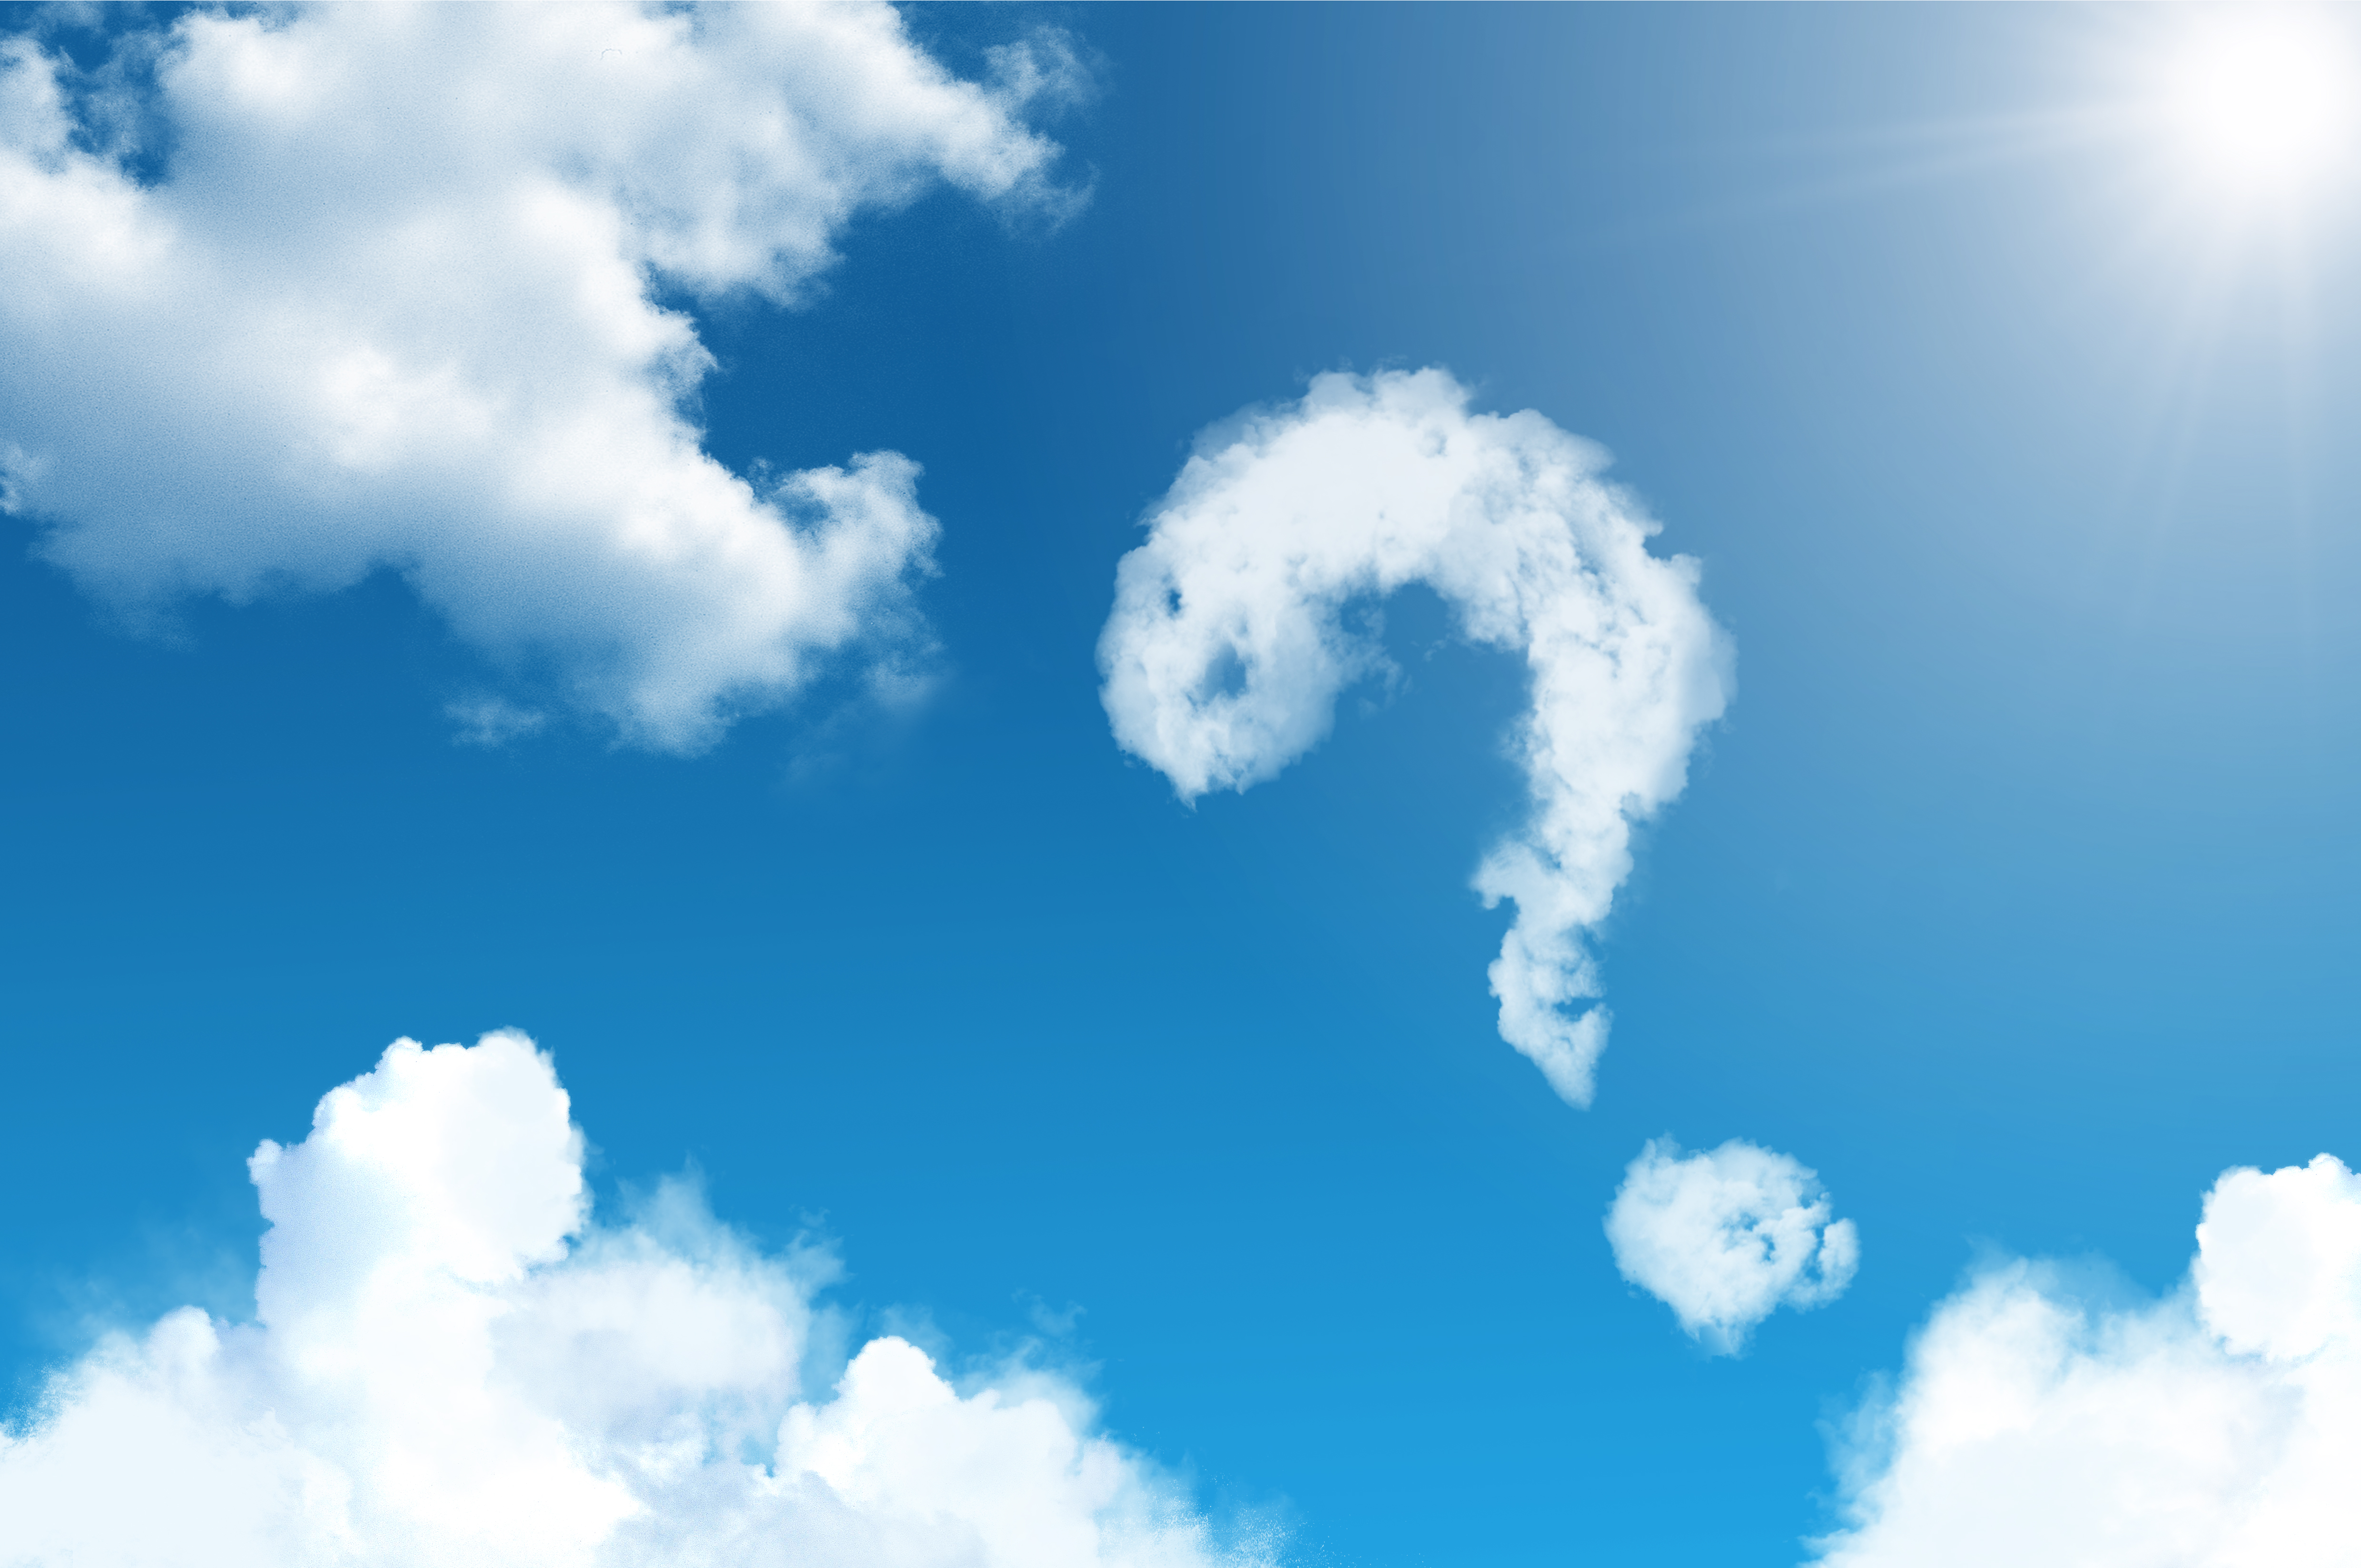 blue sky and white clouds clouds sun question mark